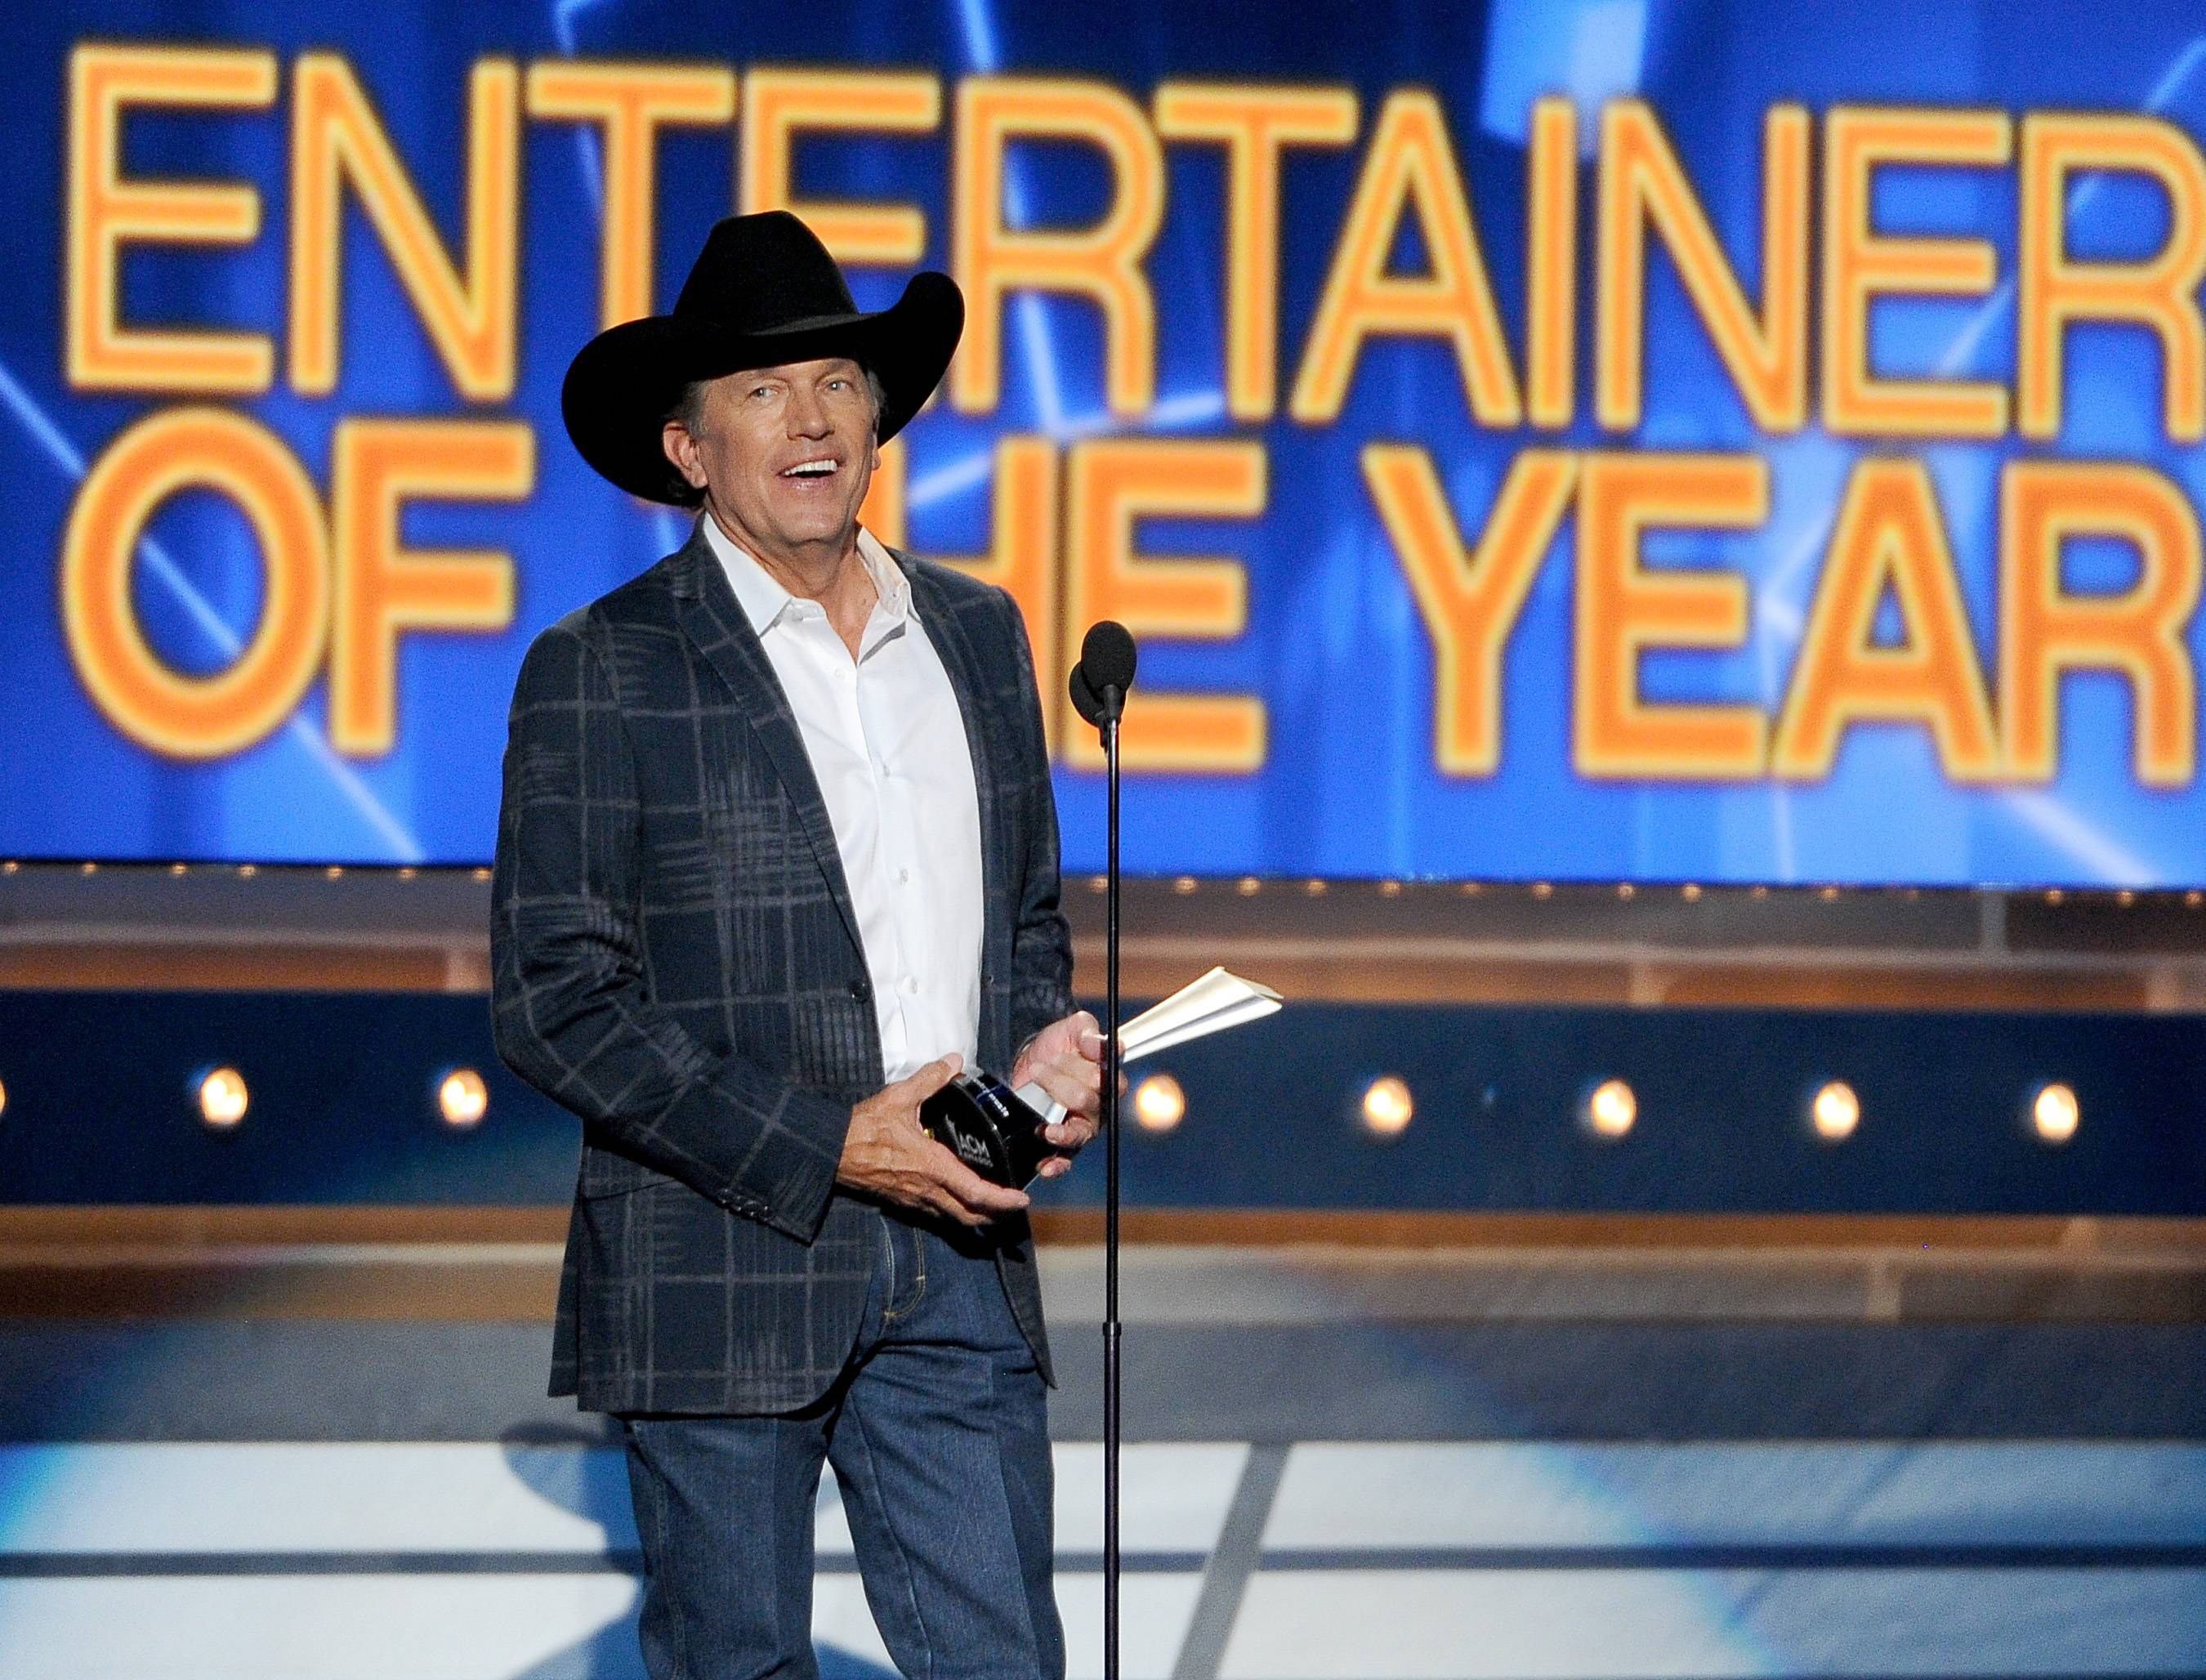 George Strait accepts the award for entertainer of the year at the 49th annual Academy of Country Music Awards at the MGM Grand Garden Arena on Sunday in Las Vegas.